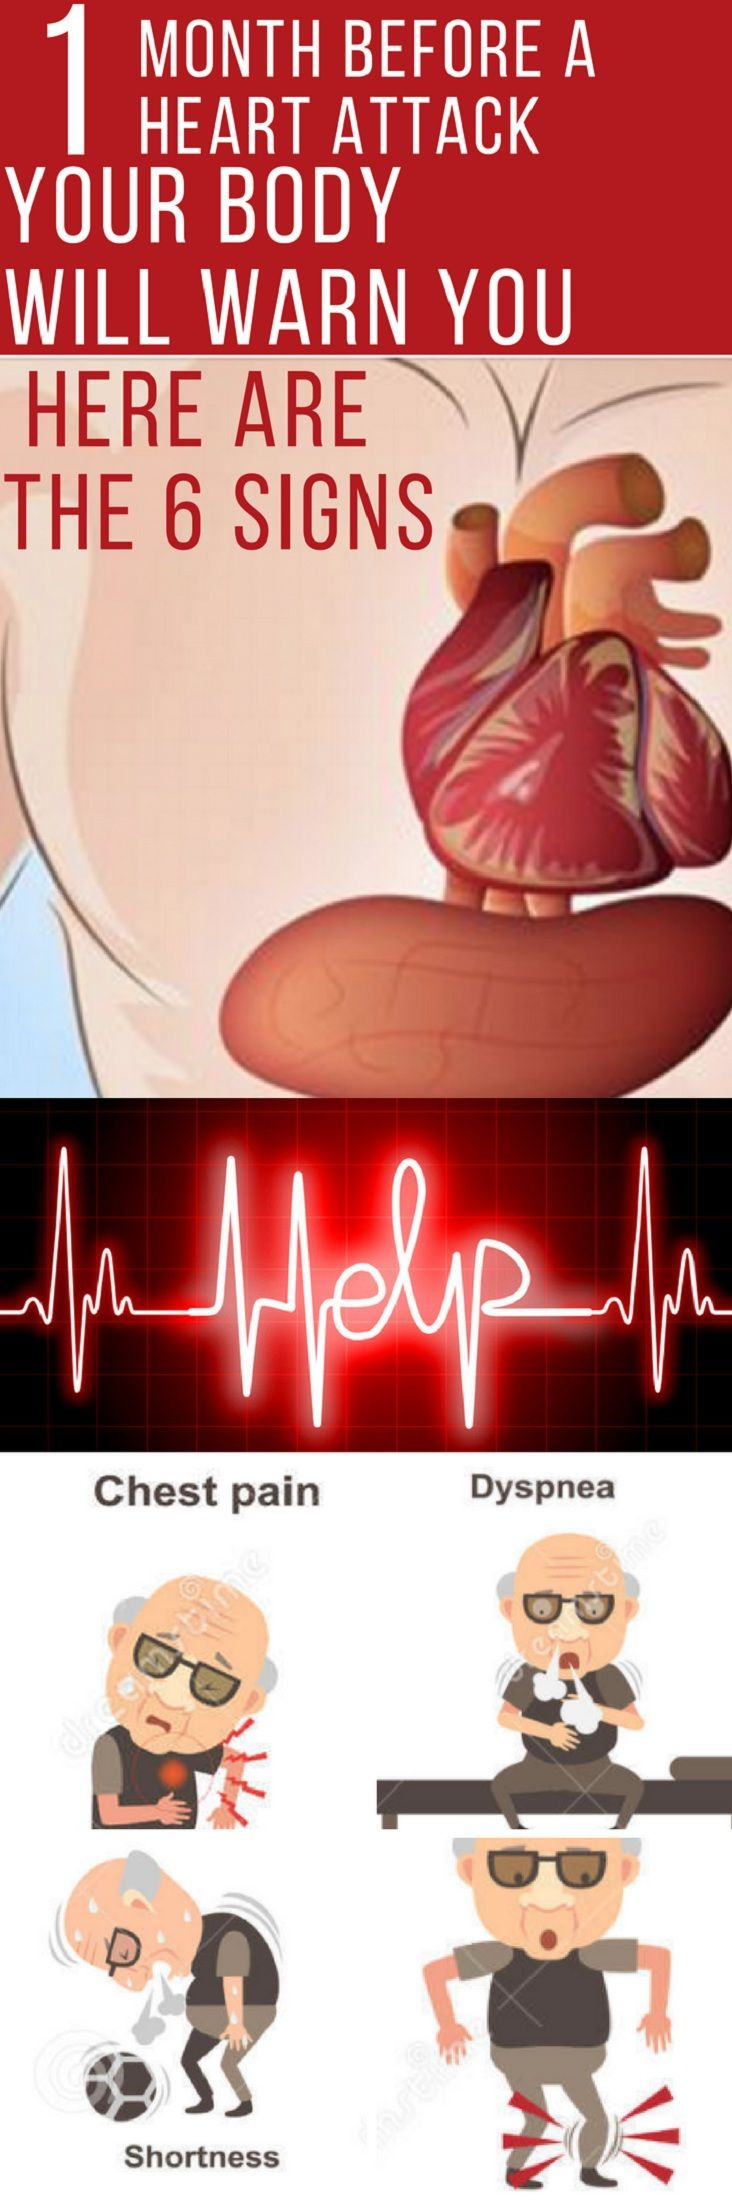 One Month Before a Heart Attack Your Body Will Warn You  Here are the 6 Signs